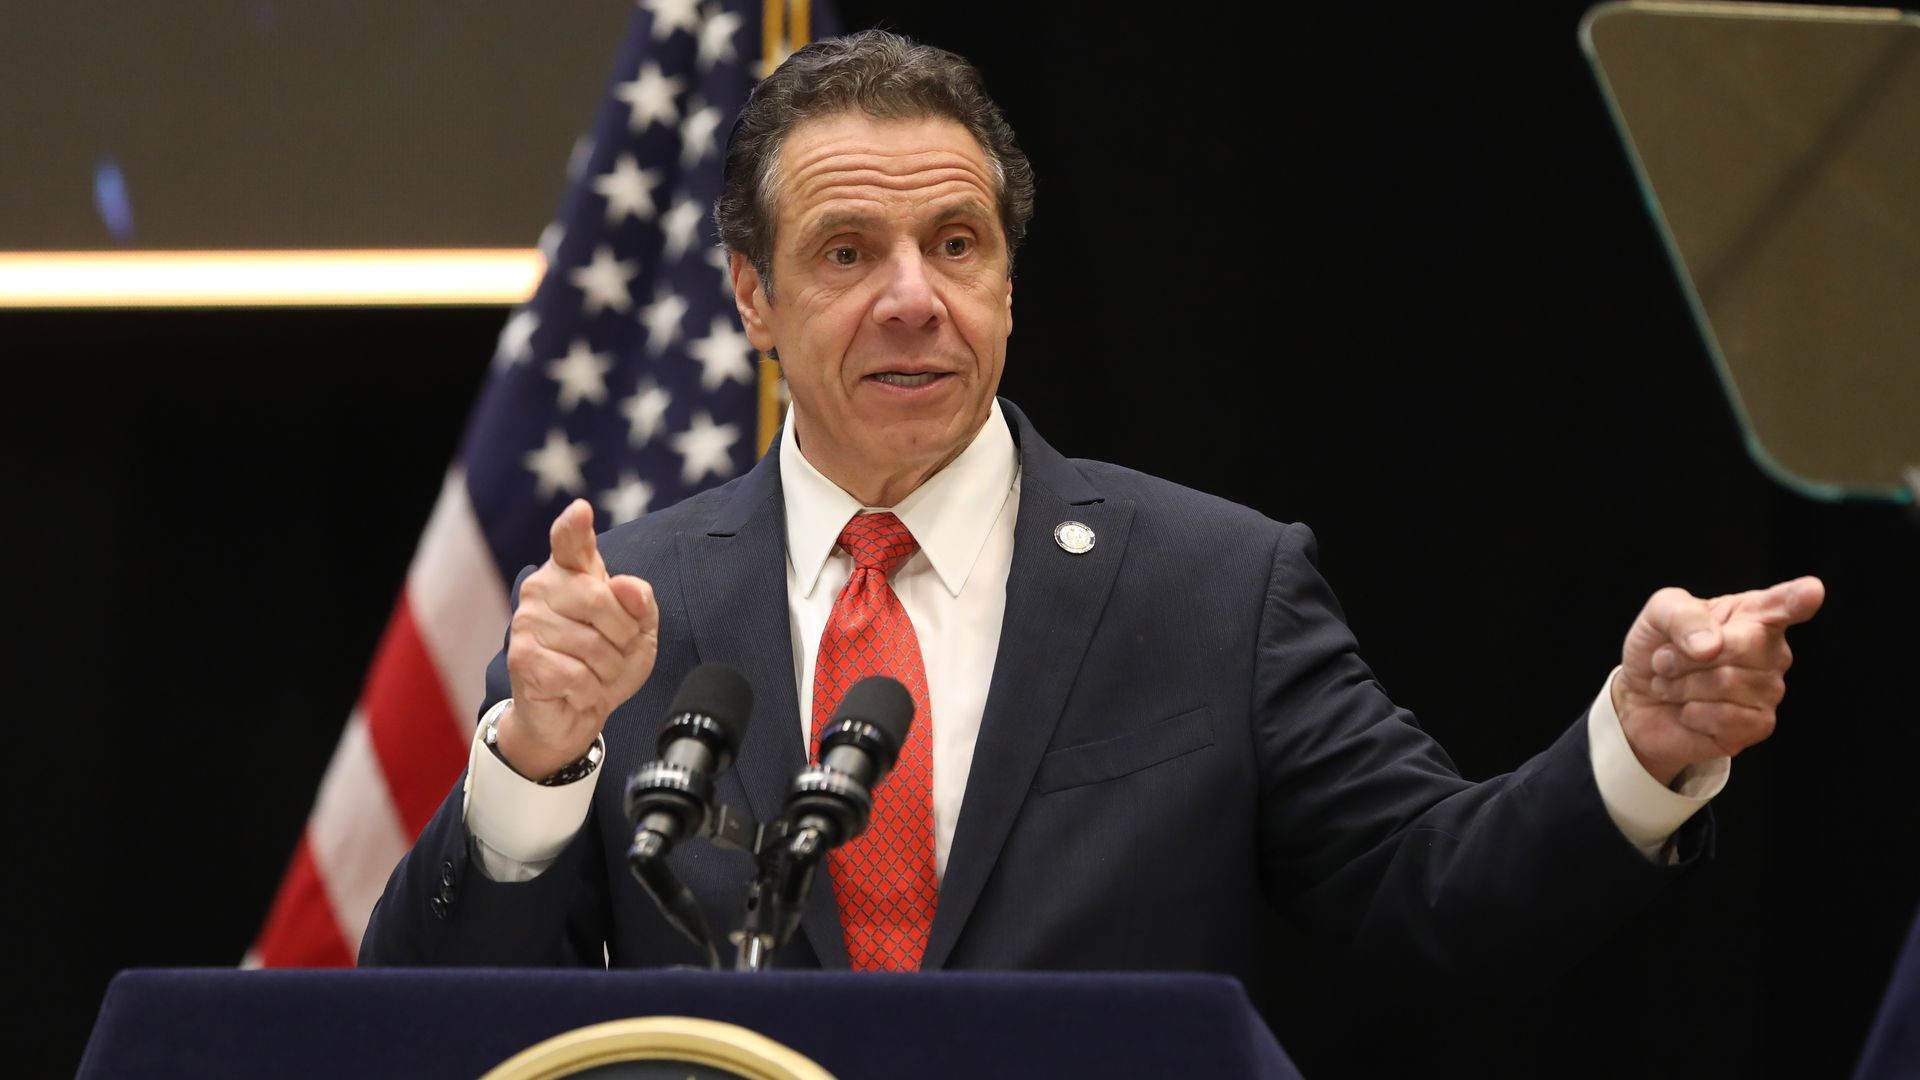 New York Gov. Andrew Cuomo. Photo: John Paraskevas/Newsday via Getty Images